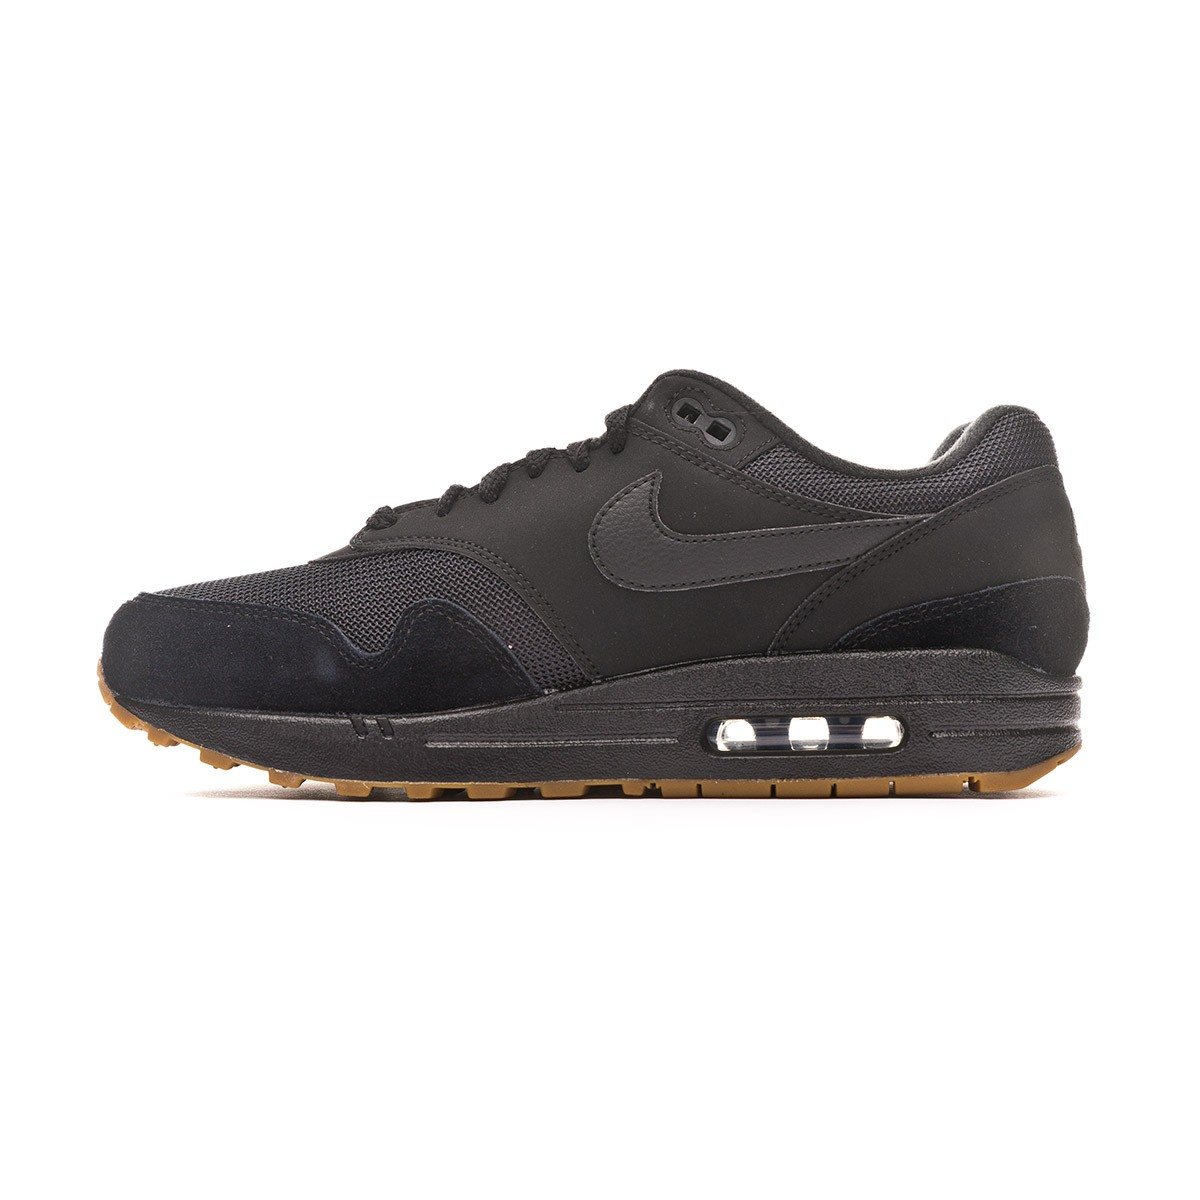 d331d70237b Trainers Nike Air Max 1 2019 Black-Gum med brown - Football store Fútbol  Emotion